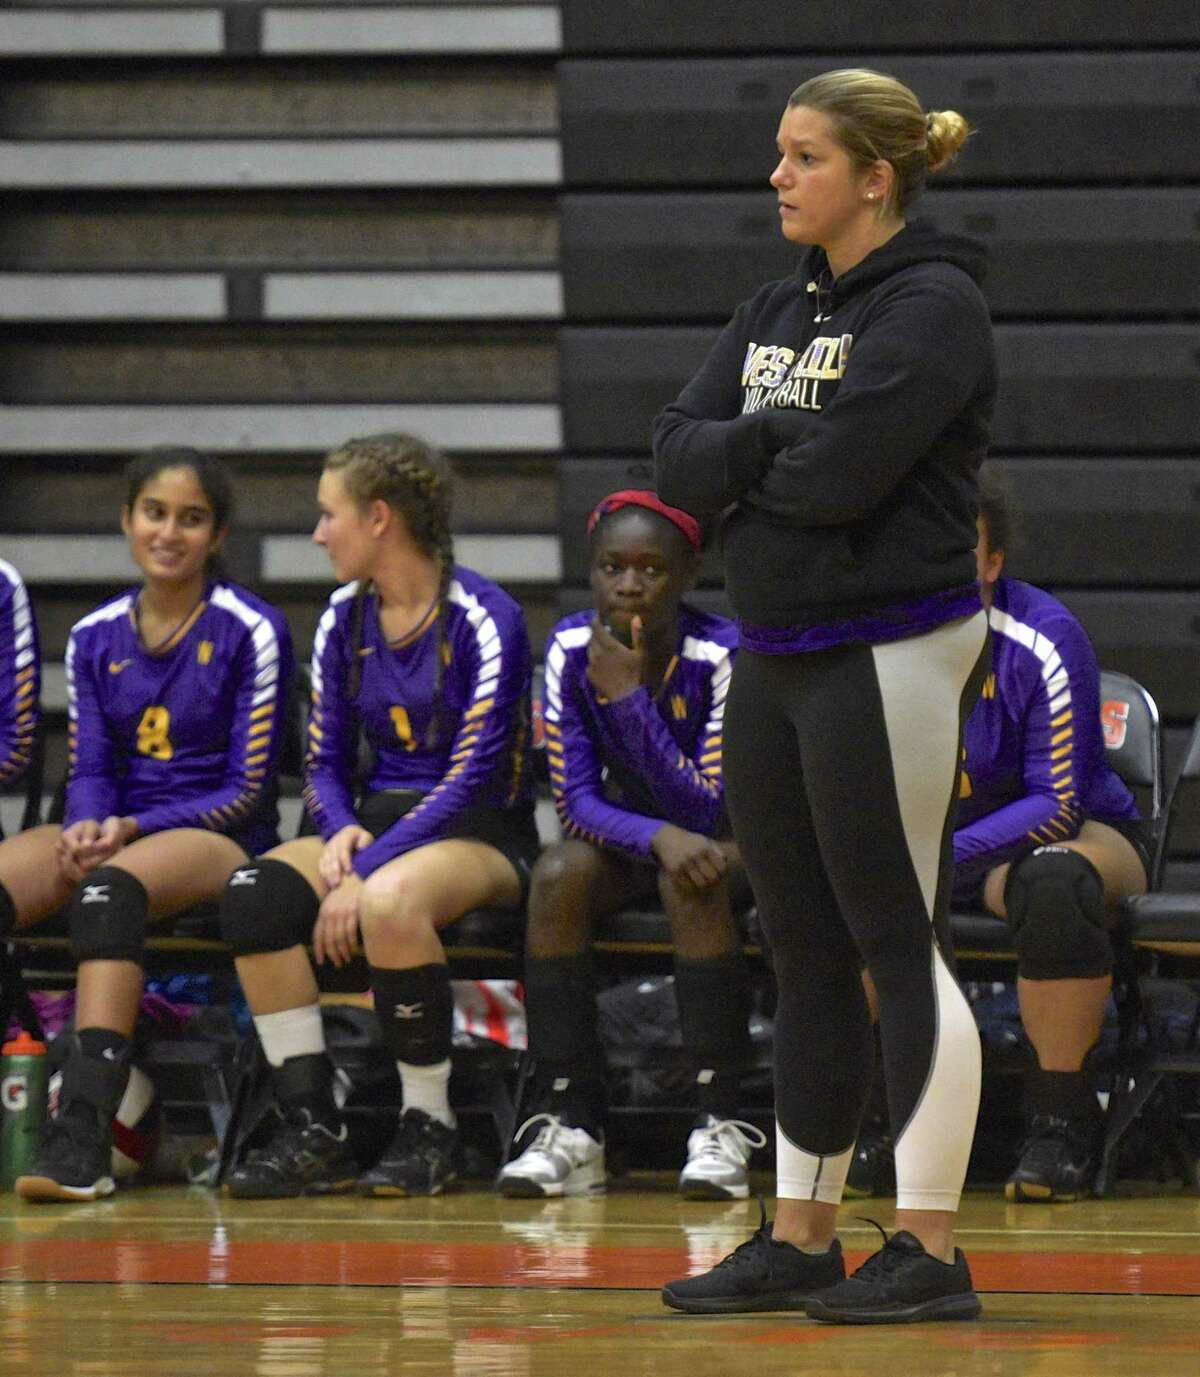 Westhill head coach Marianna Capomolla watches her team in the girls volleyball game between Westhill and Ridgefield high schools on Oct. 25, 2017, at Ridgefield High School, in Ridgefield, Conn.